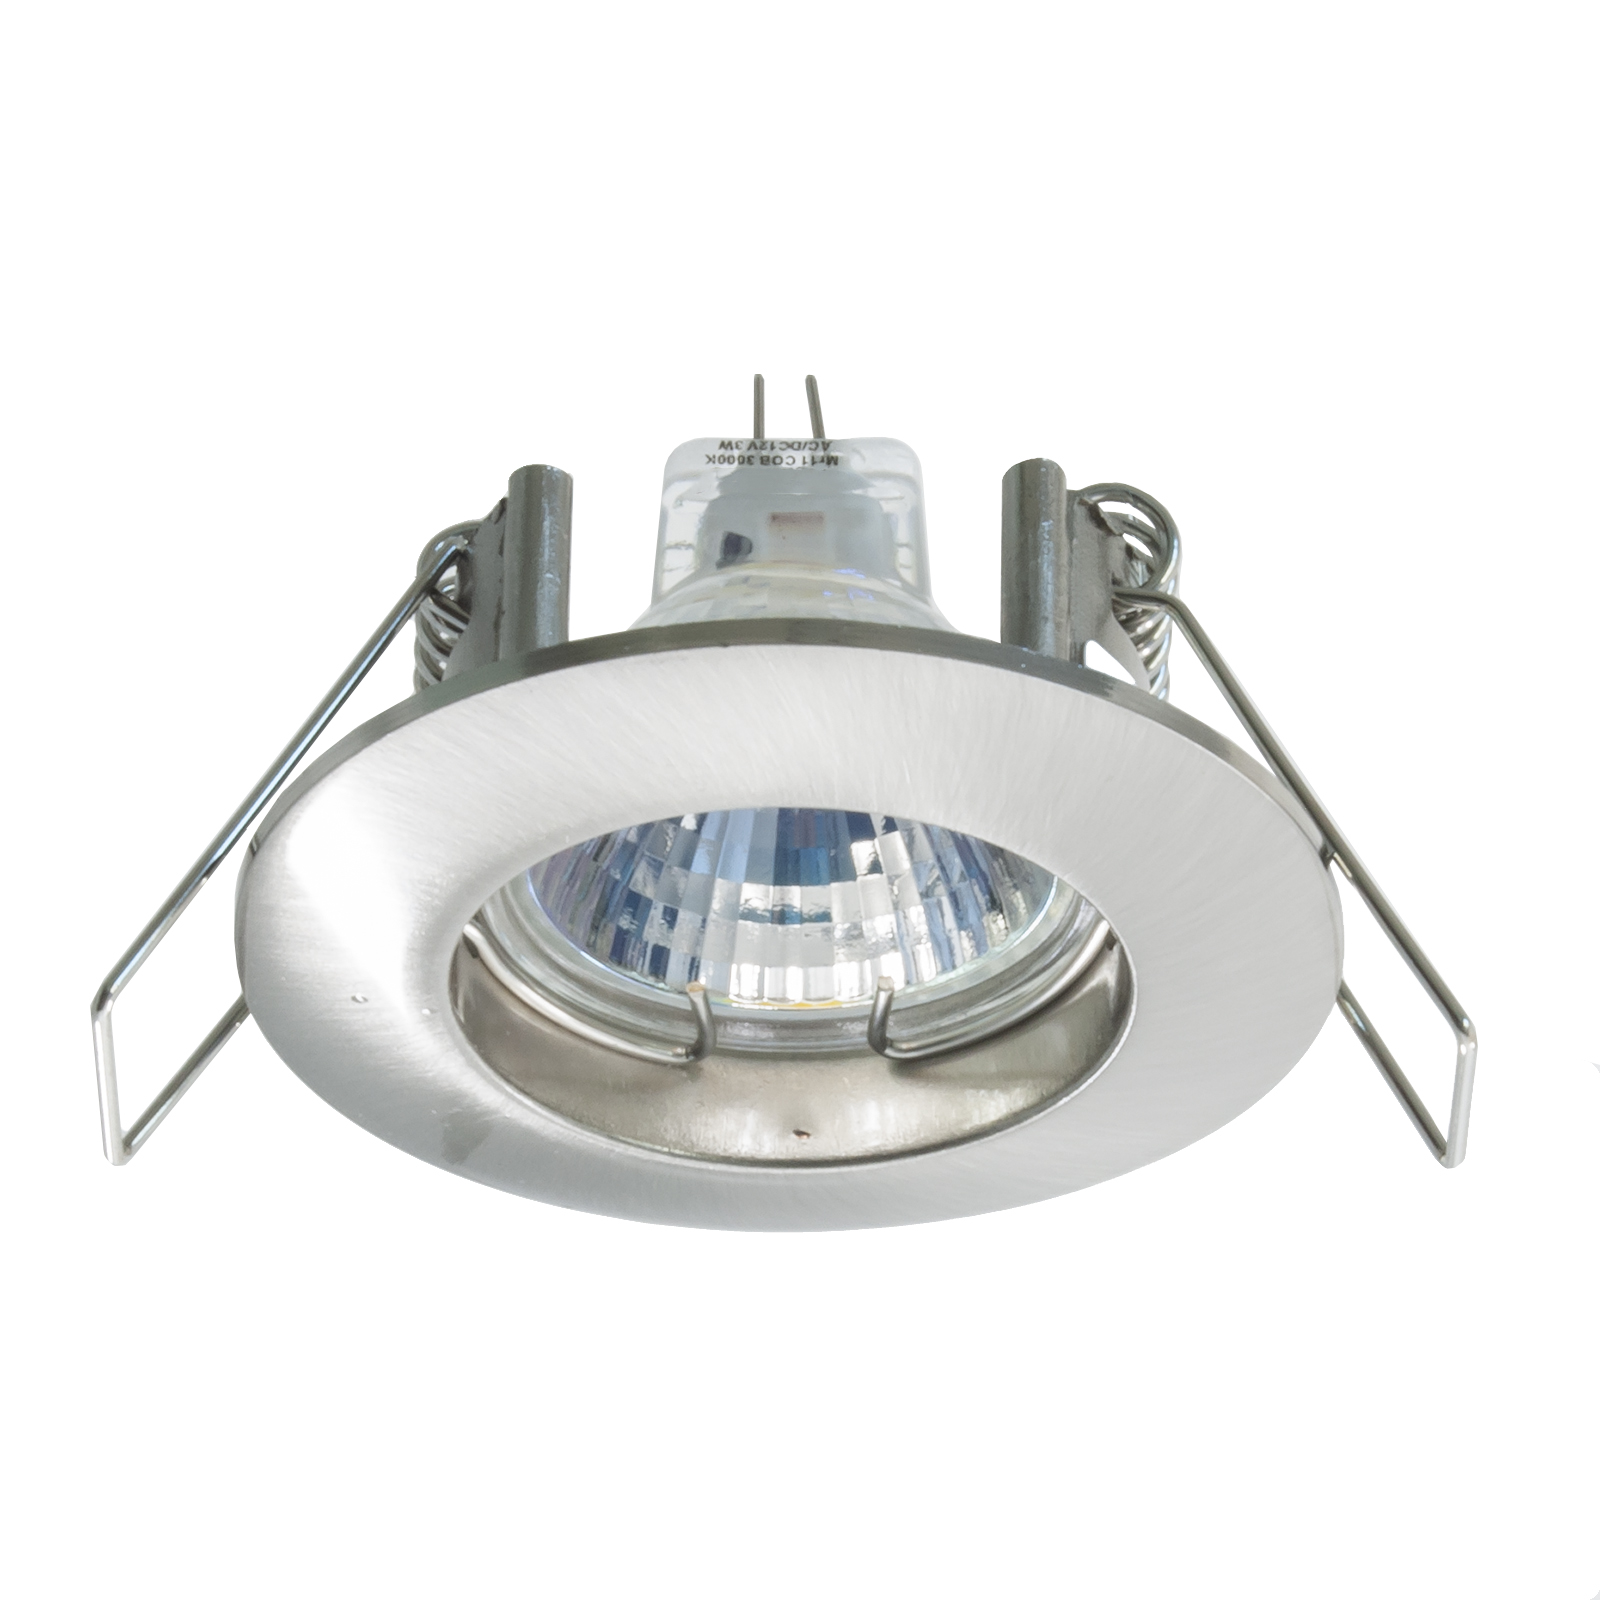 "LED spotlight MR11 recessed 4 "" ceiling 3W 12V attack G4 light boat camper hood"